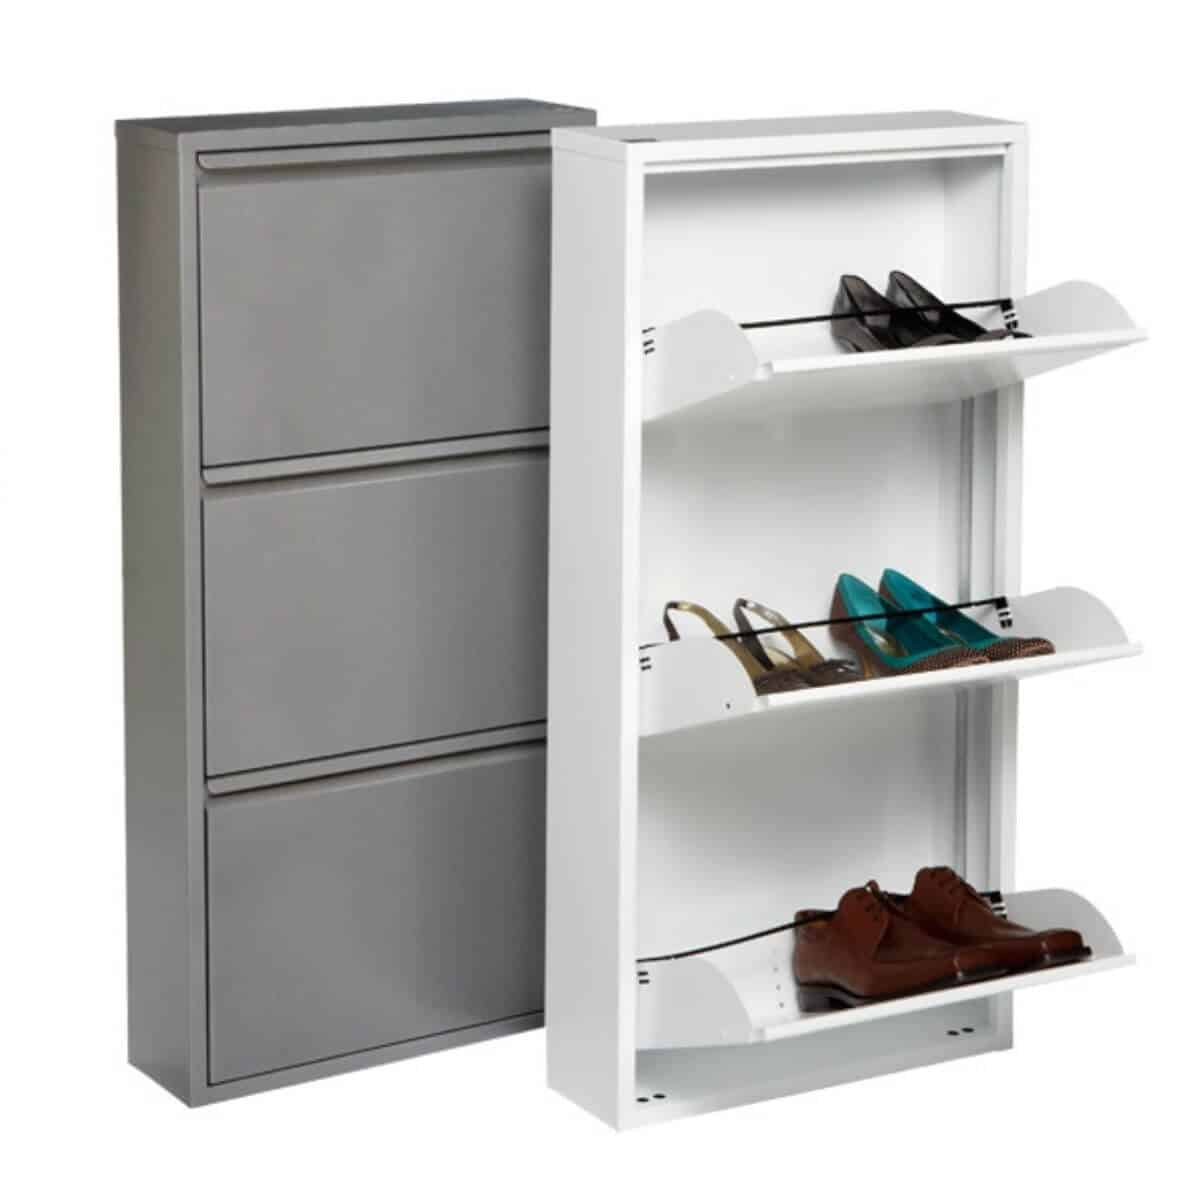 A grey and a white shoe cabinet.